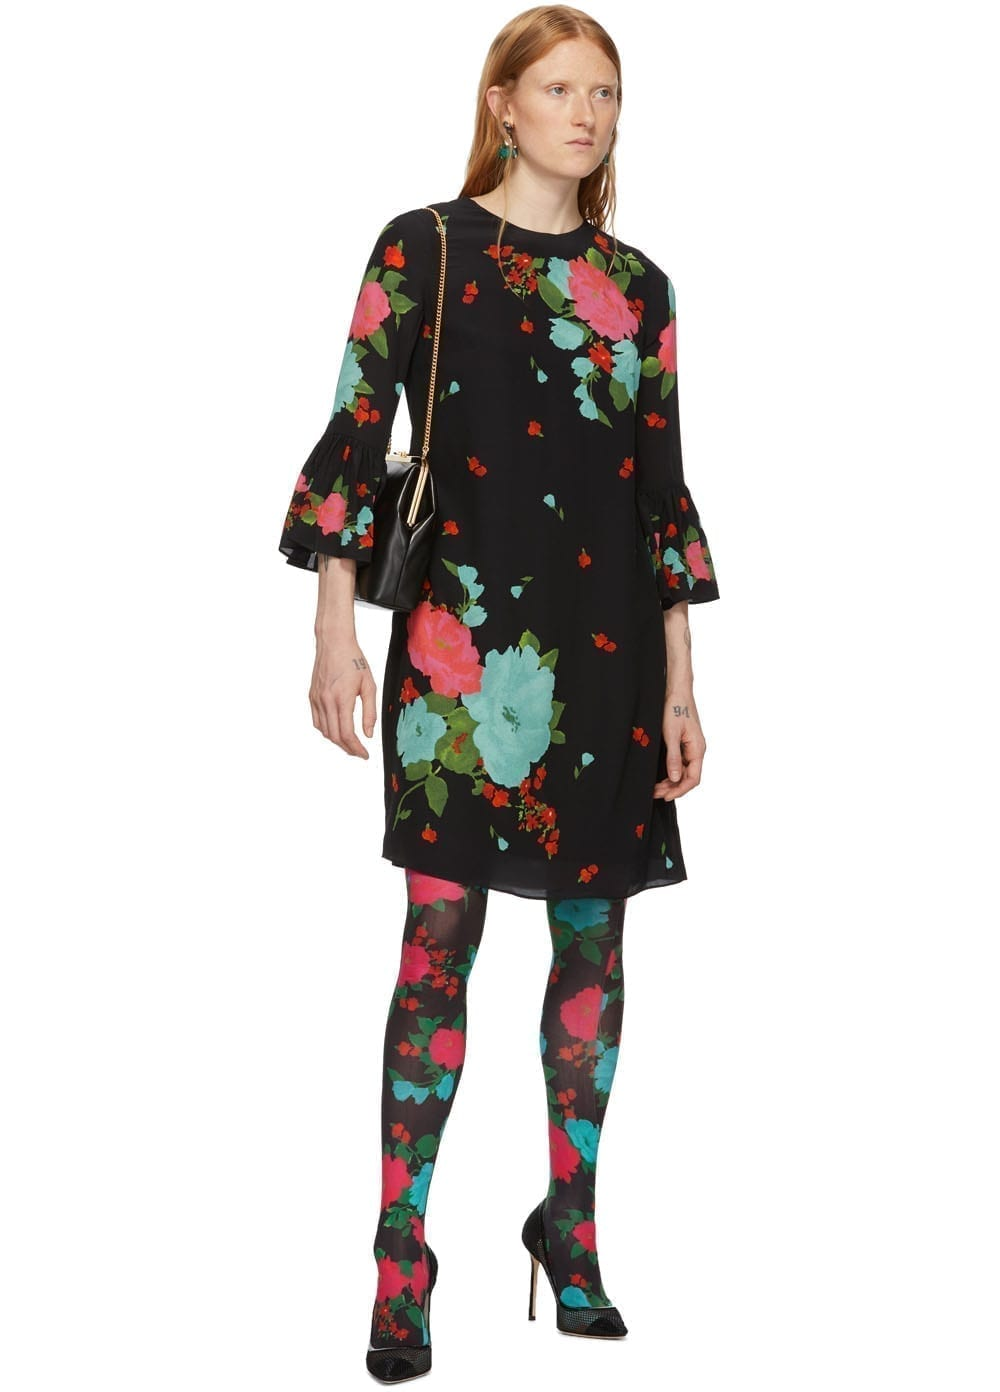 ERDEM Black & Pink Elijah Dress